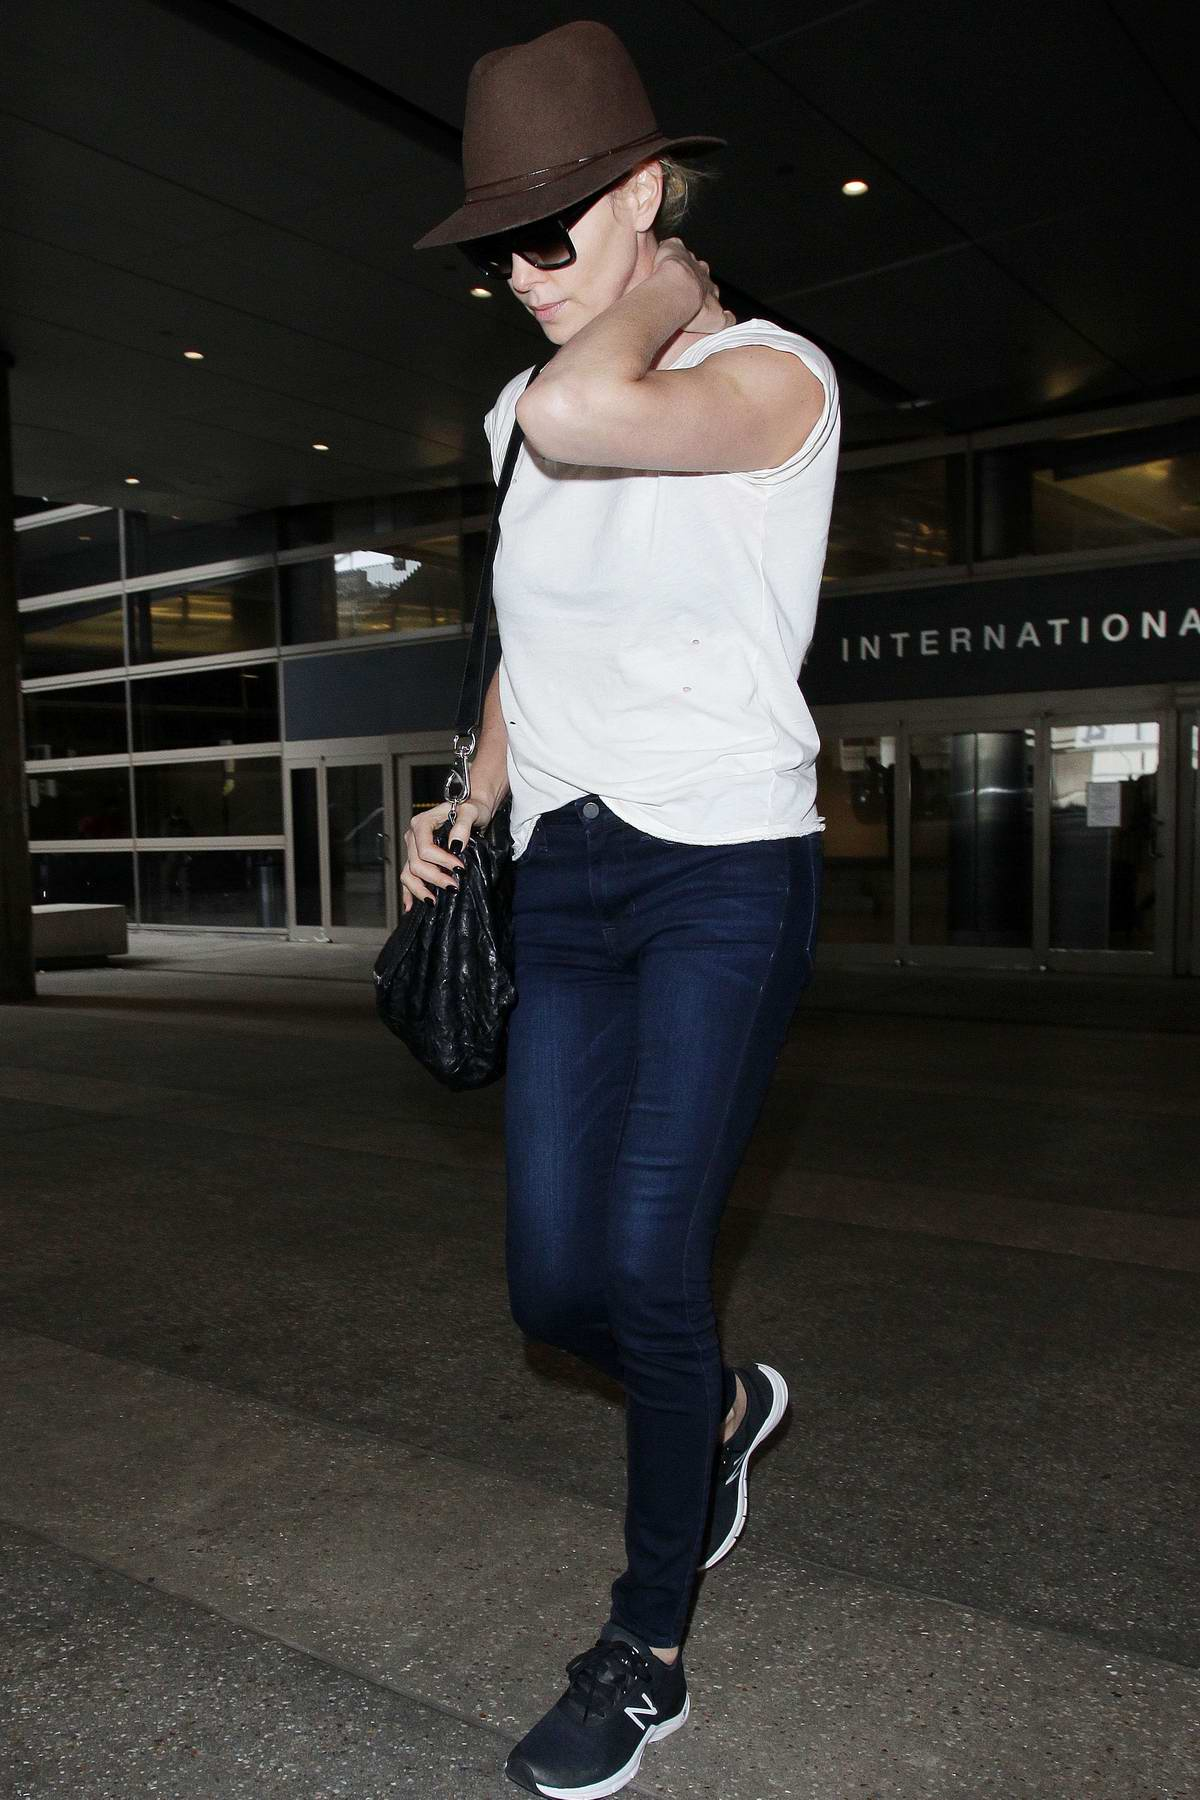 Charlize Theron keeps it casual in a white tee with blue jeans and a hat as she lands at LAX International Airport, Los Angeles